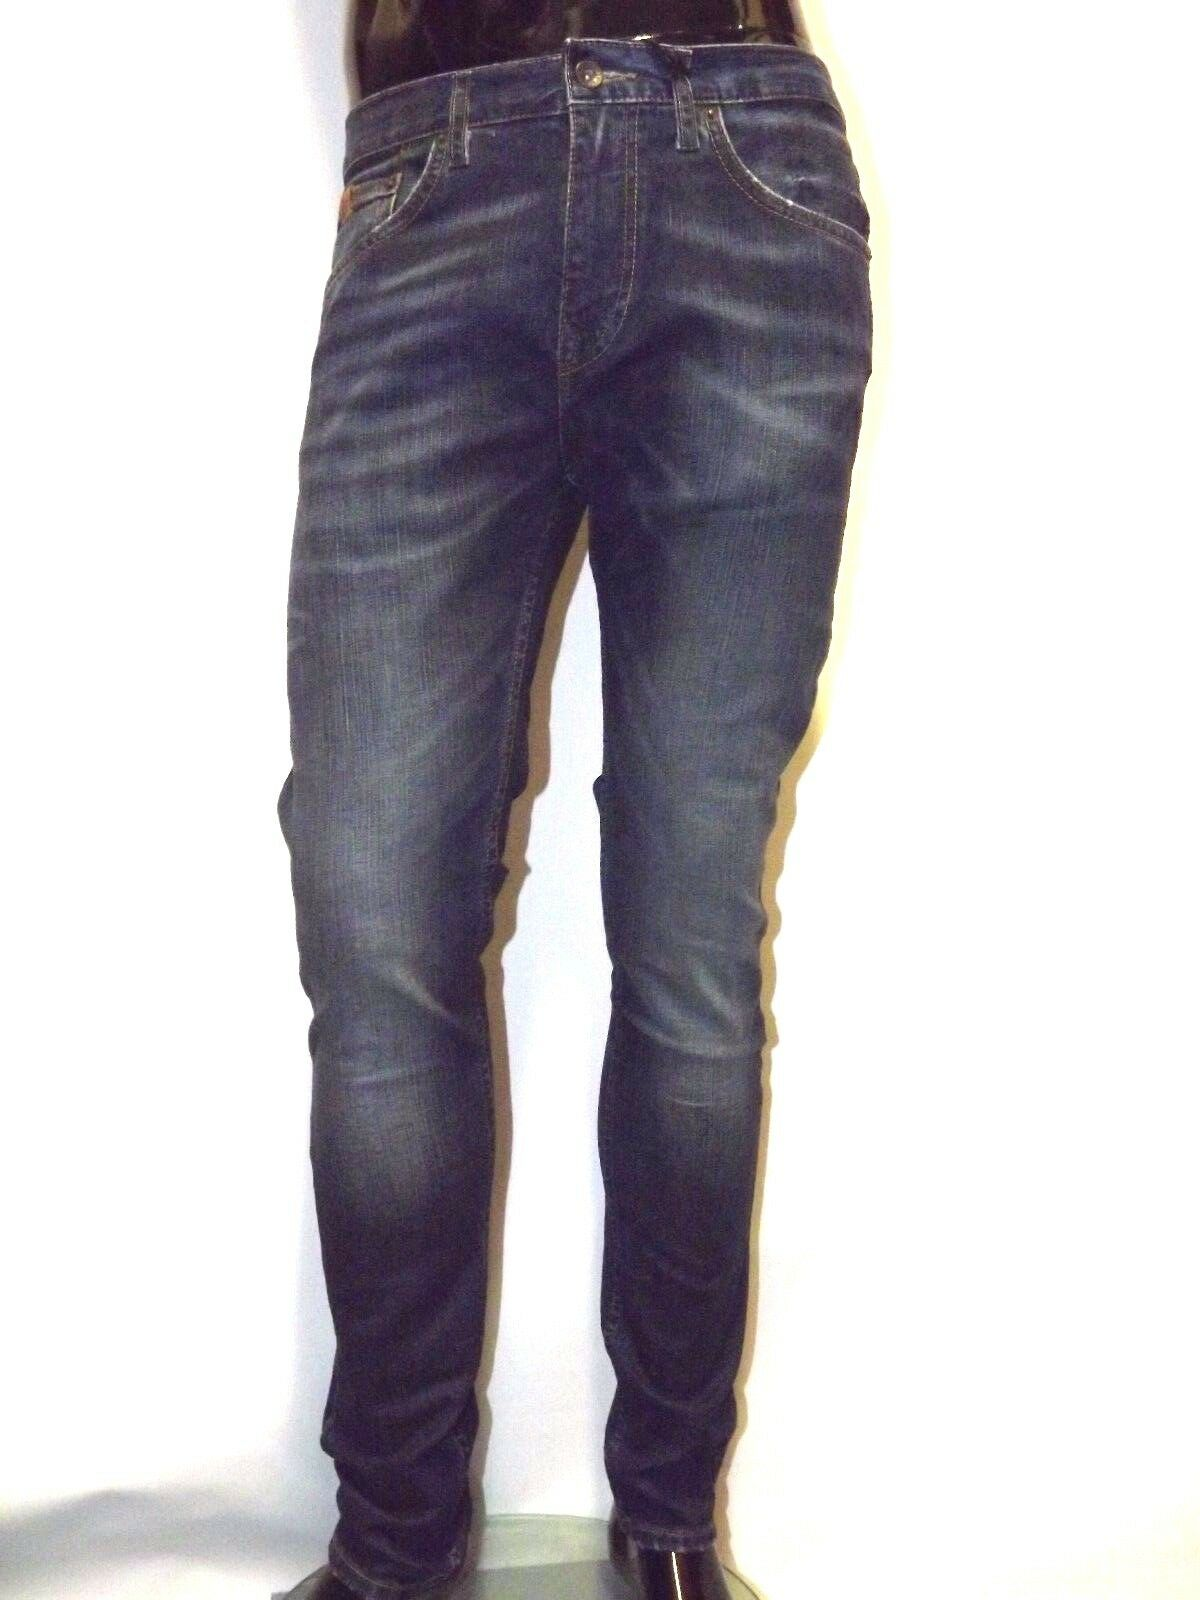 BEN SHERMAN JEANS THE DINGLLEY MG10555 SKINNY LEG 28 29 32 DENIM STONE WASH